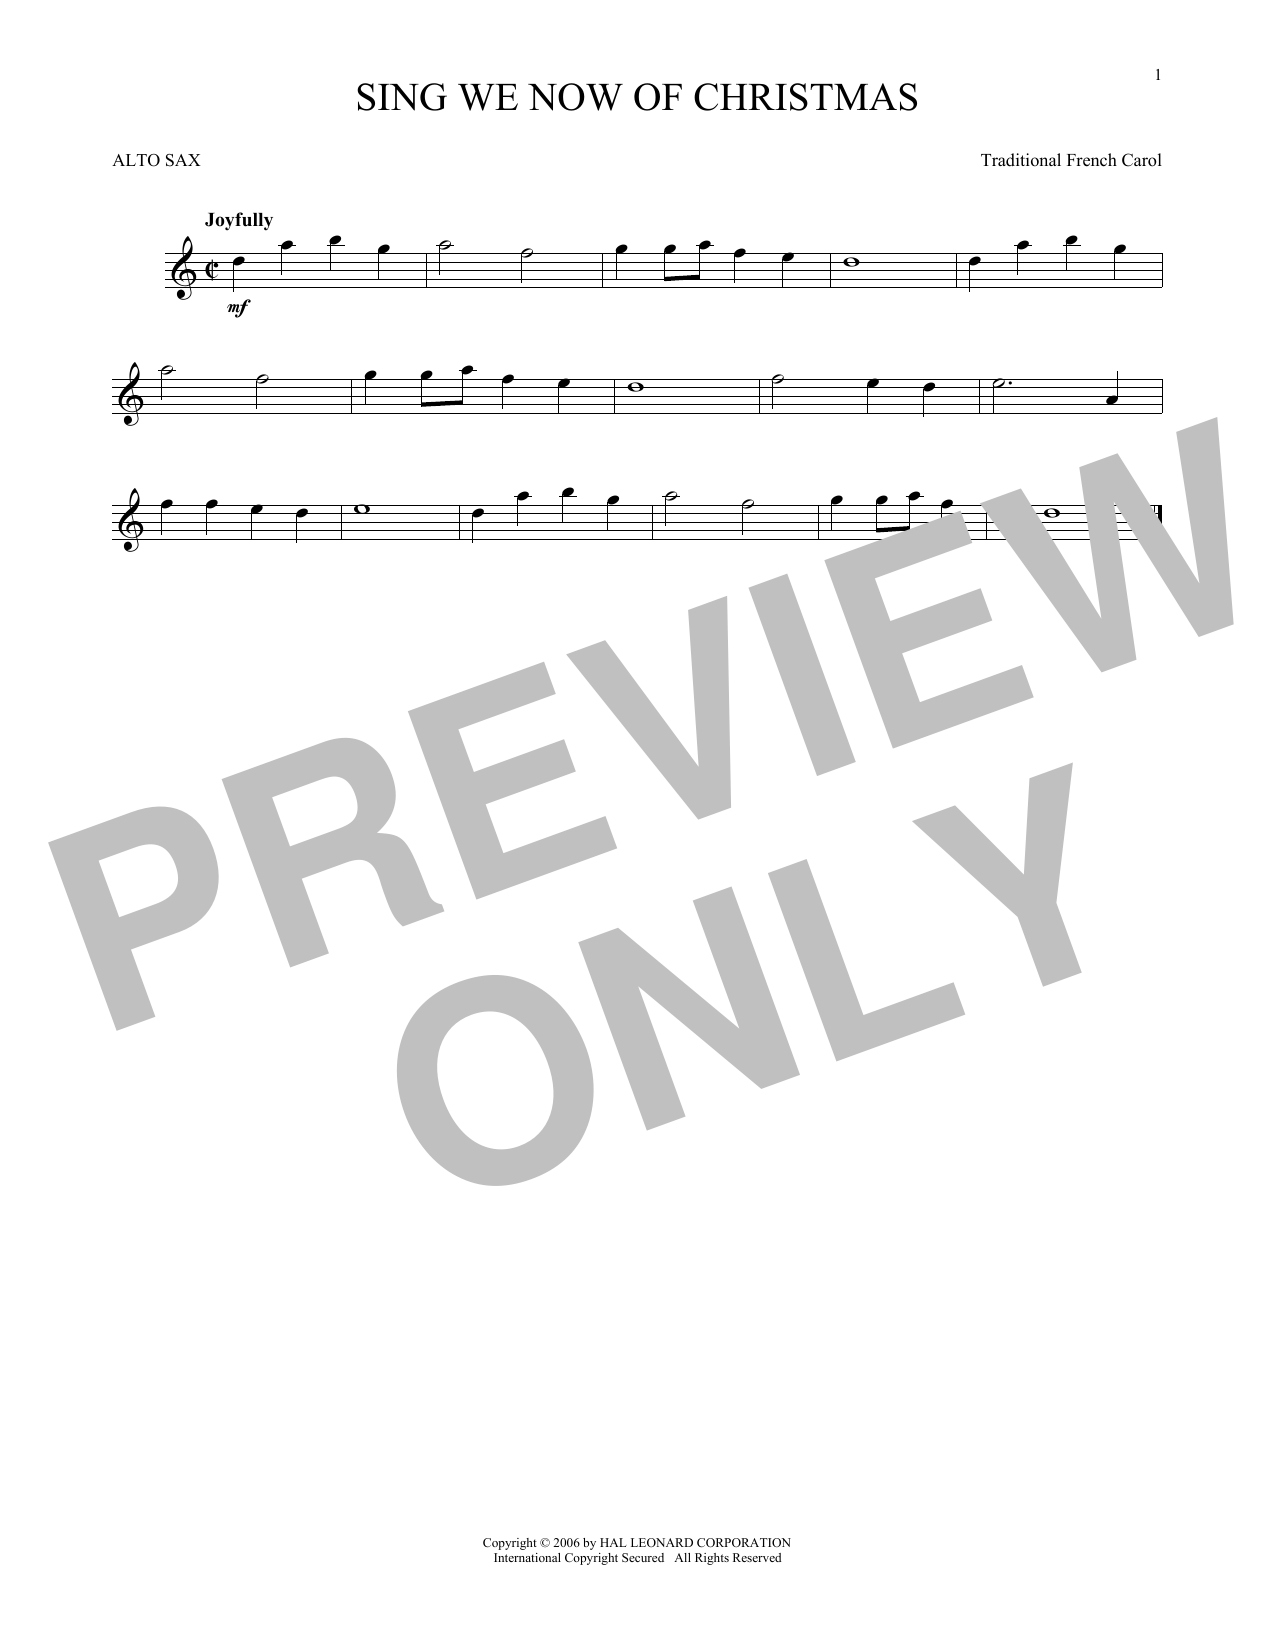 Sing We Now Of Christmas (Alto Sax Solo)